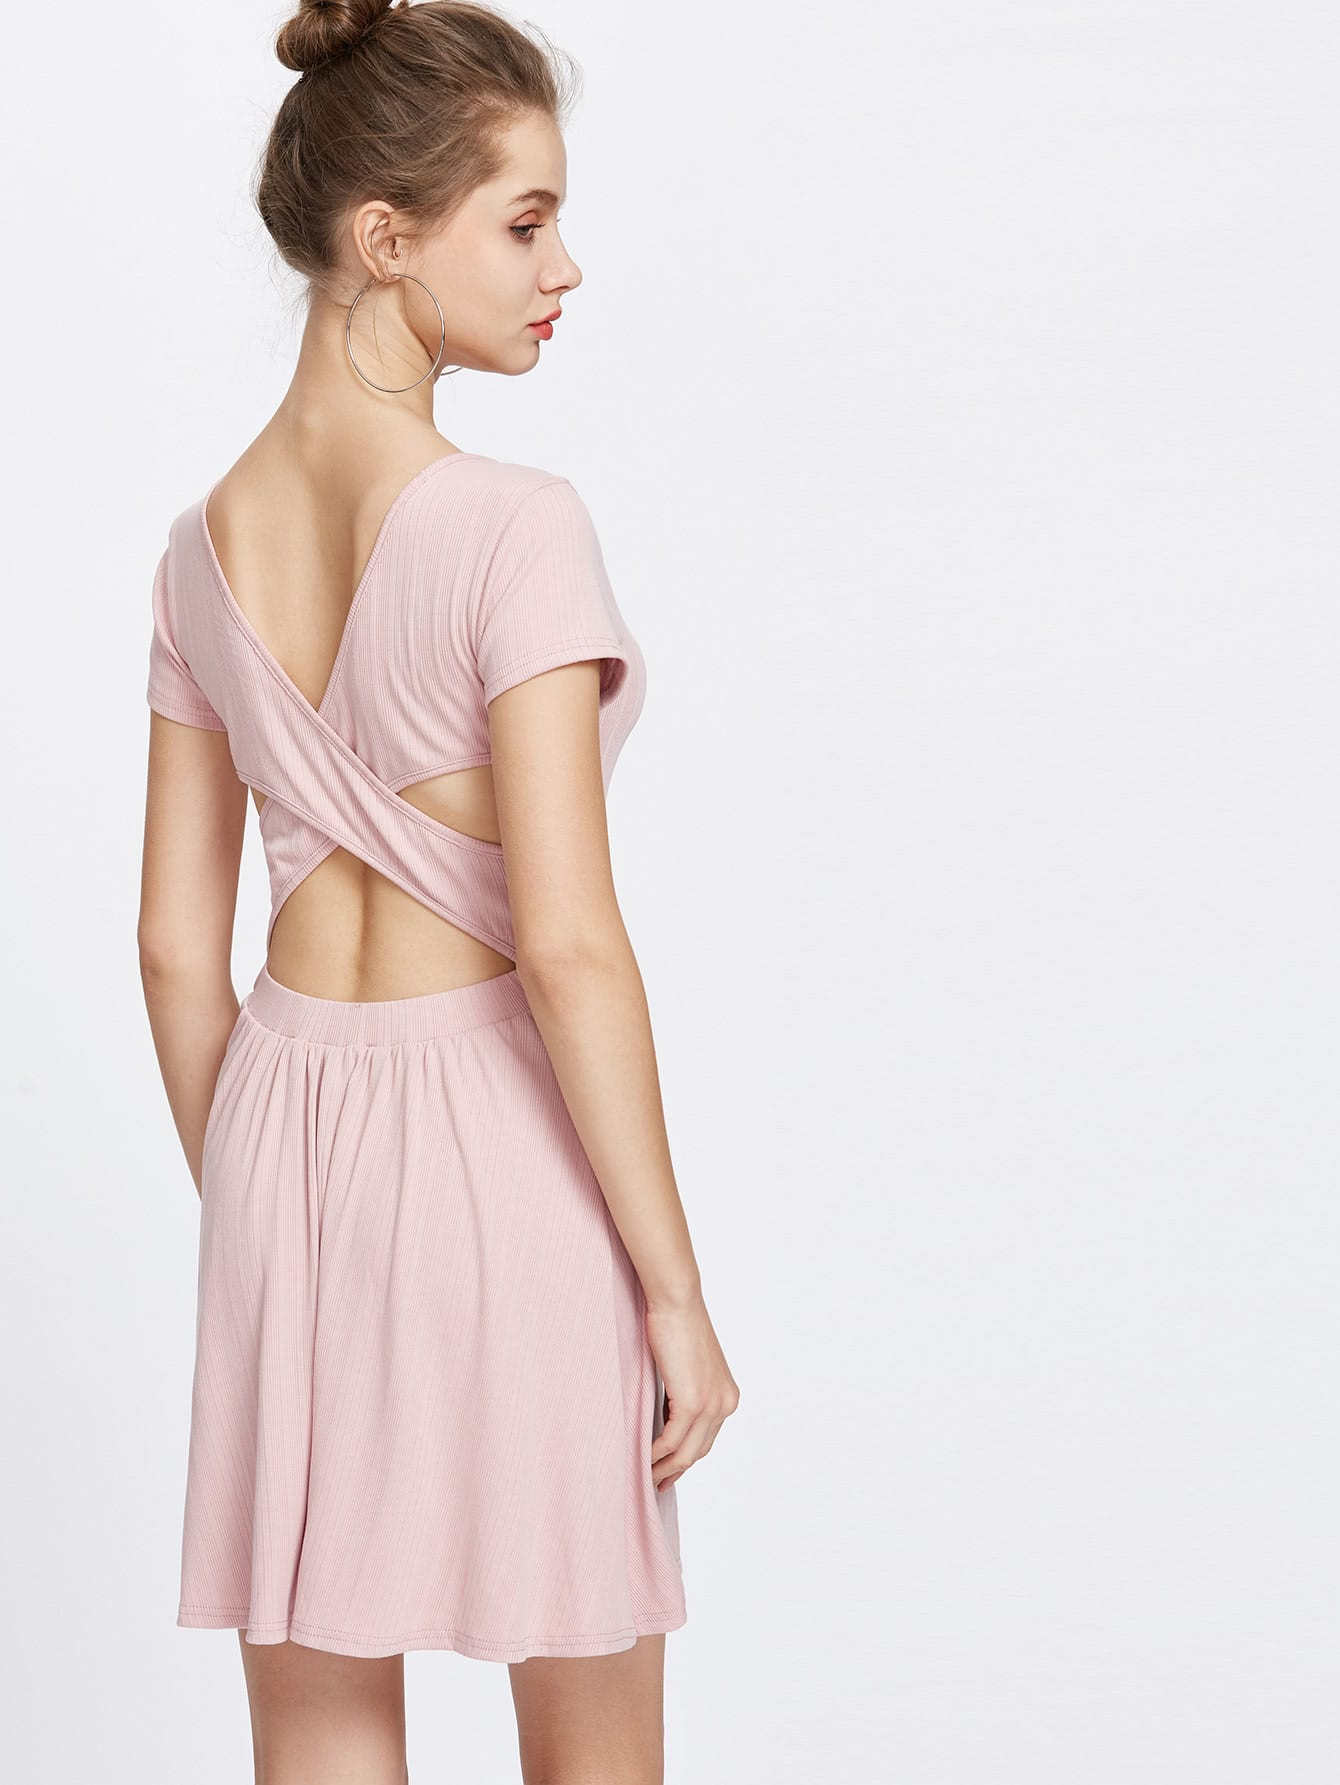 Cross Over Back Fit And Flare Ribbed Dress dress170324451